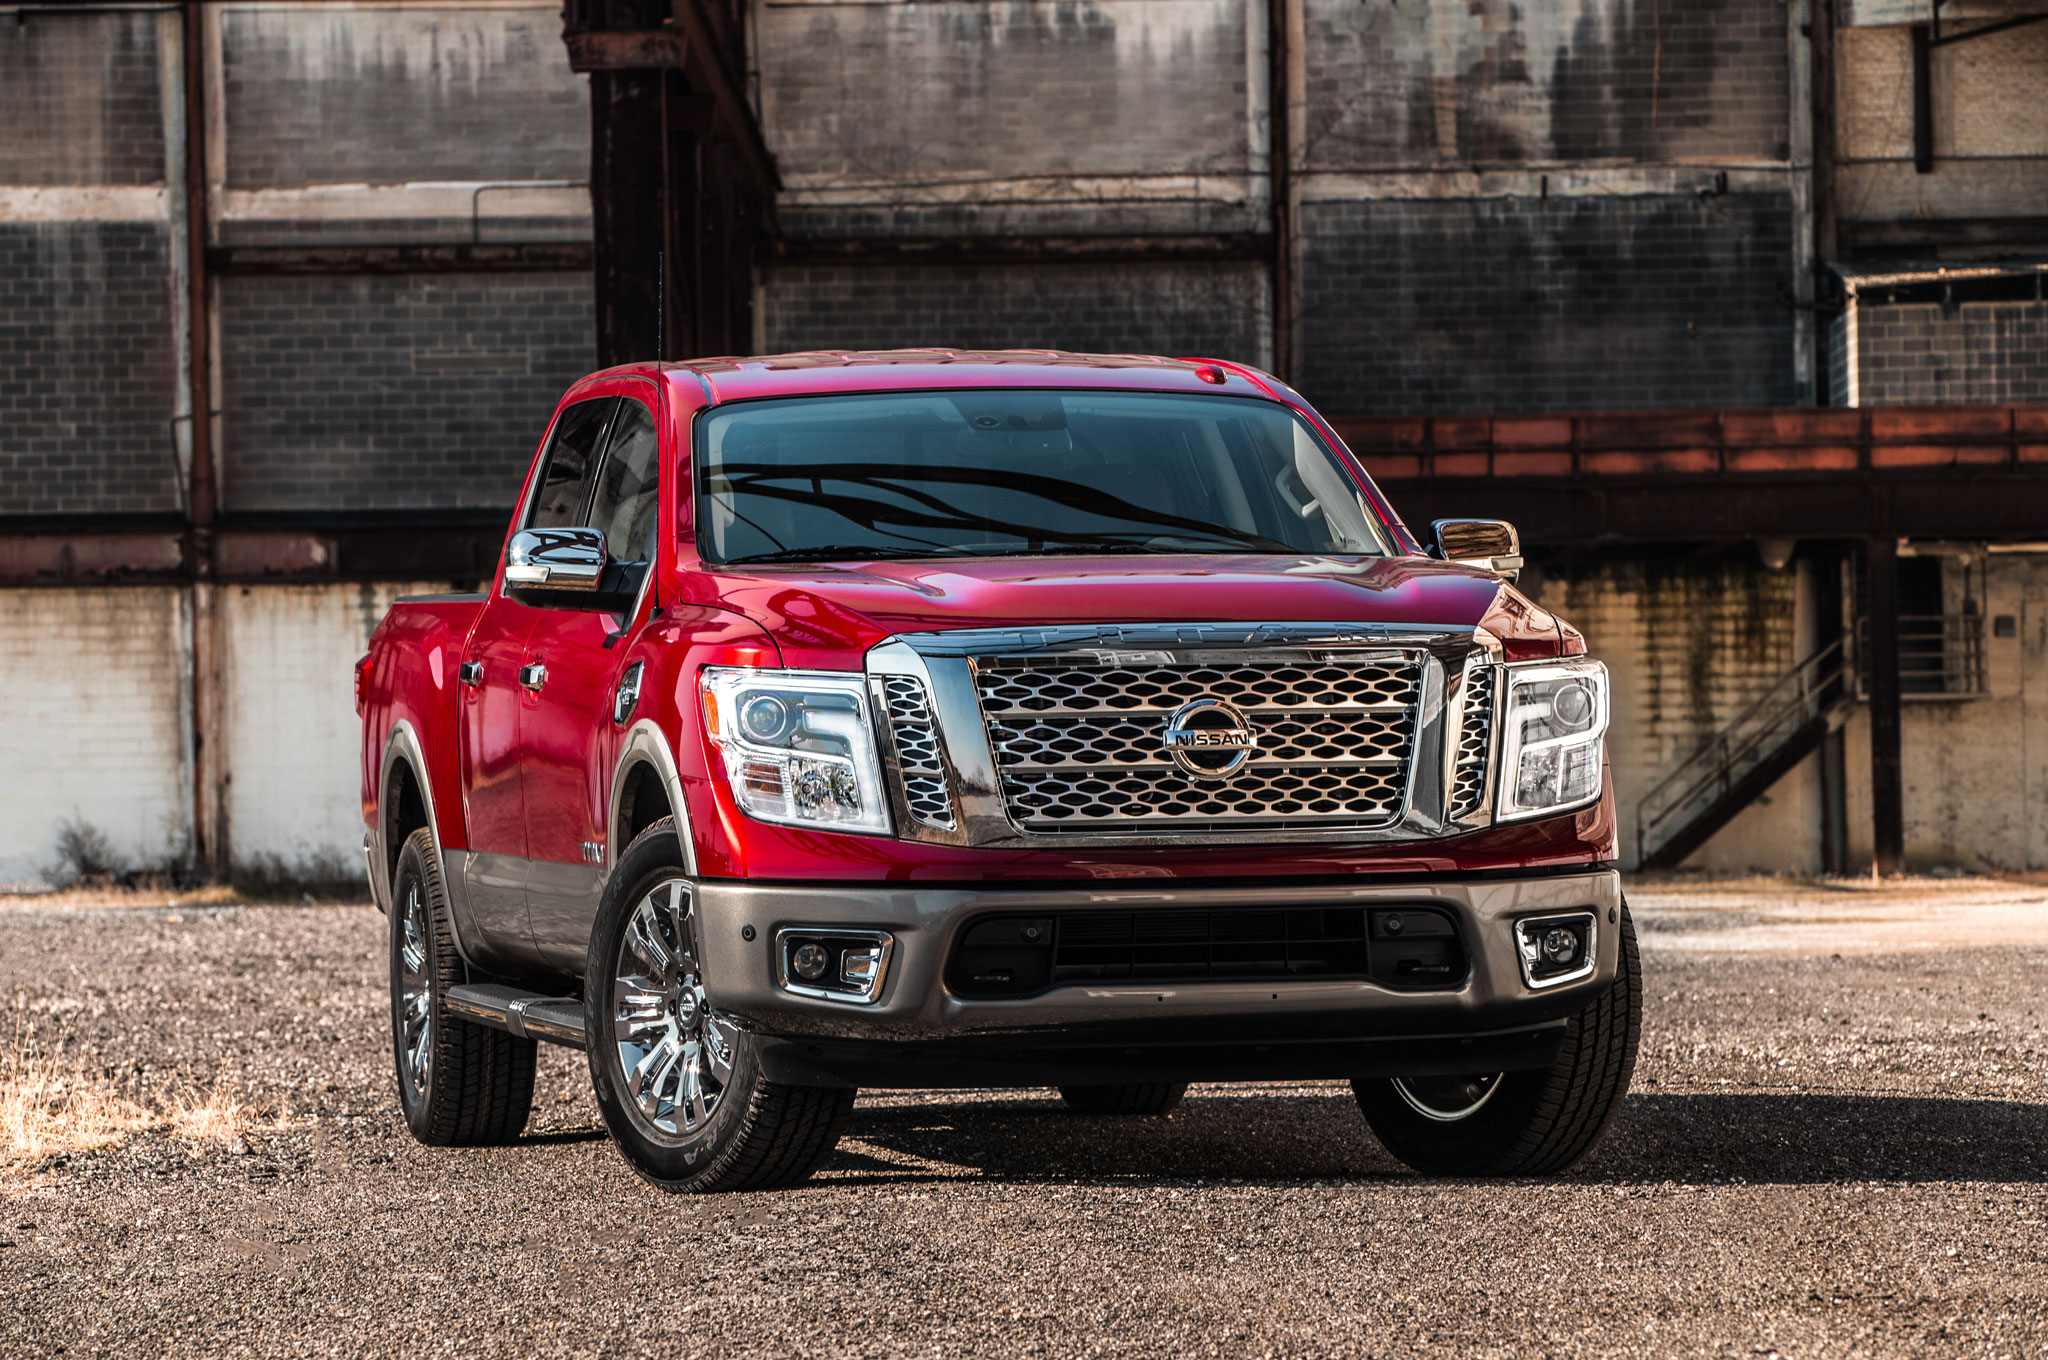 2017 Nissan Titan V 8 Crew Cab First Drive Road Test And Review Frontier Trailer Brake Wiring Show More